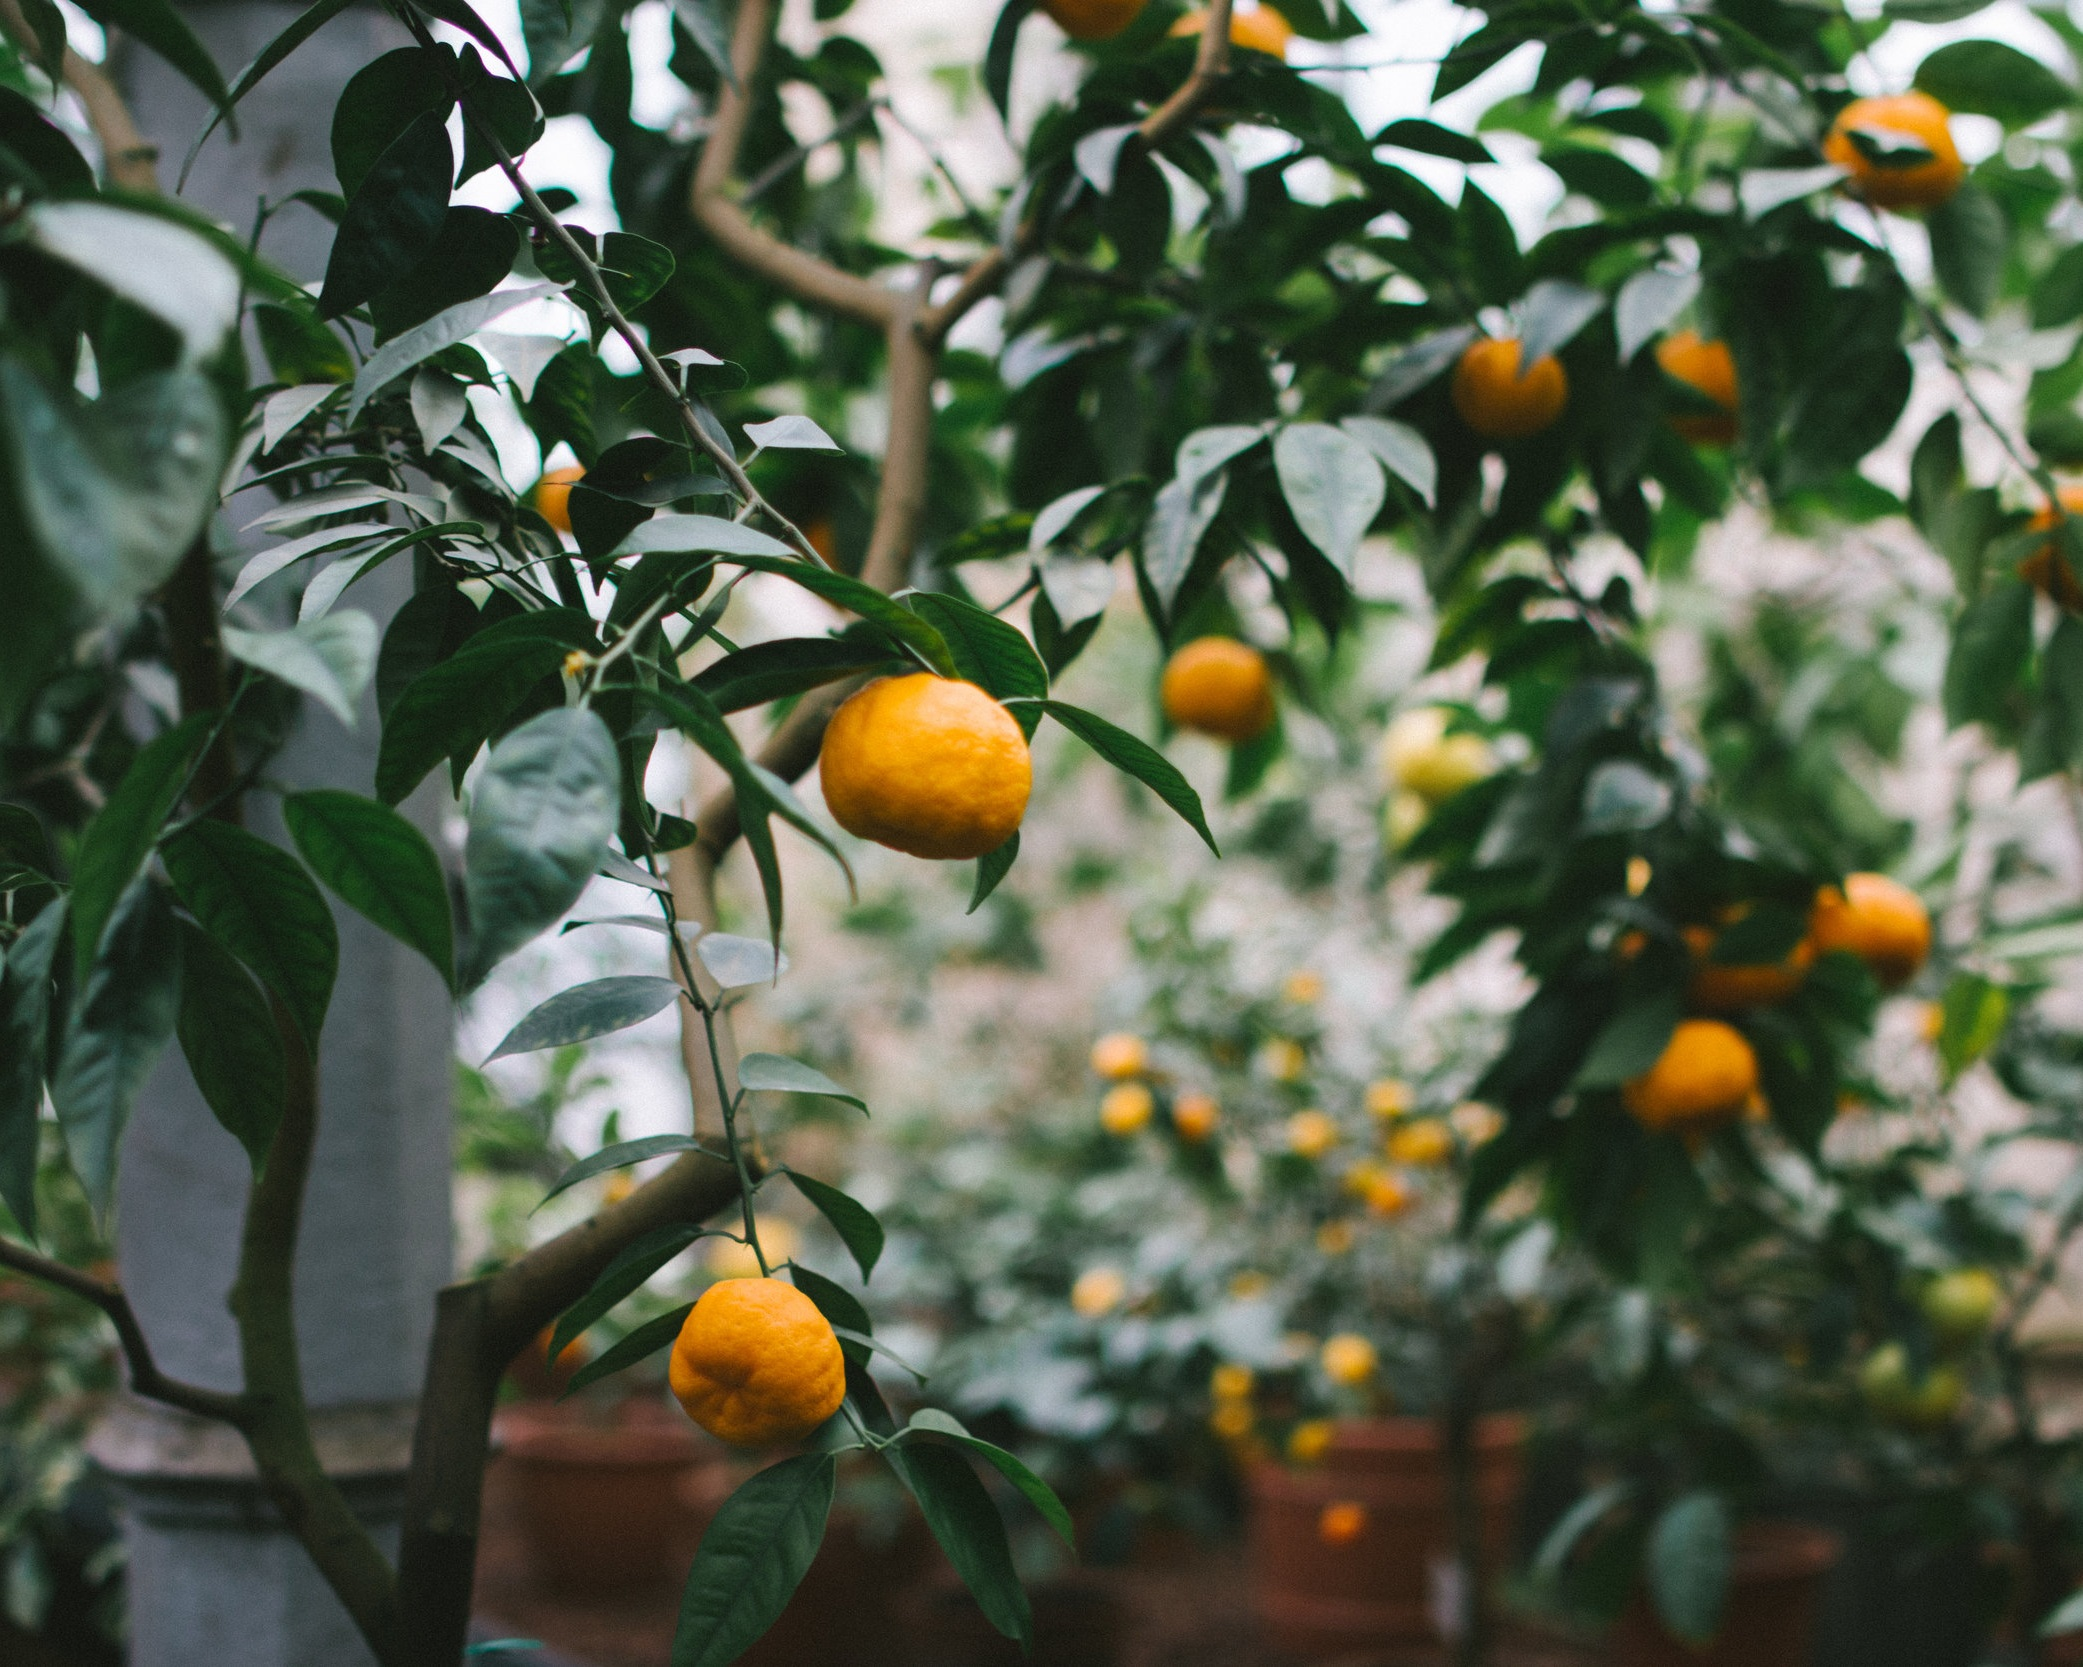 - A garden left to flourish and grow wild provides a magical haven for all nature, replenishing the earth with its life force. Petitgrain (Citrus aurantium), also known as the bitter orange tree is soothing and calming, having the ability to both relax and uplift.